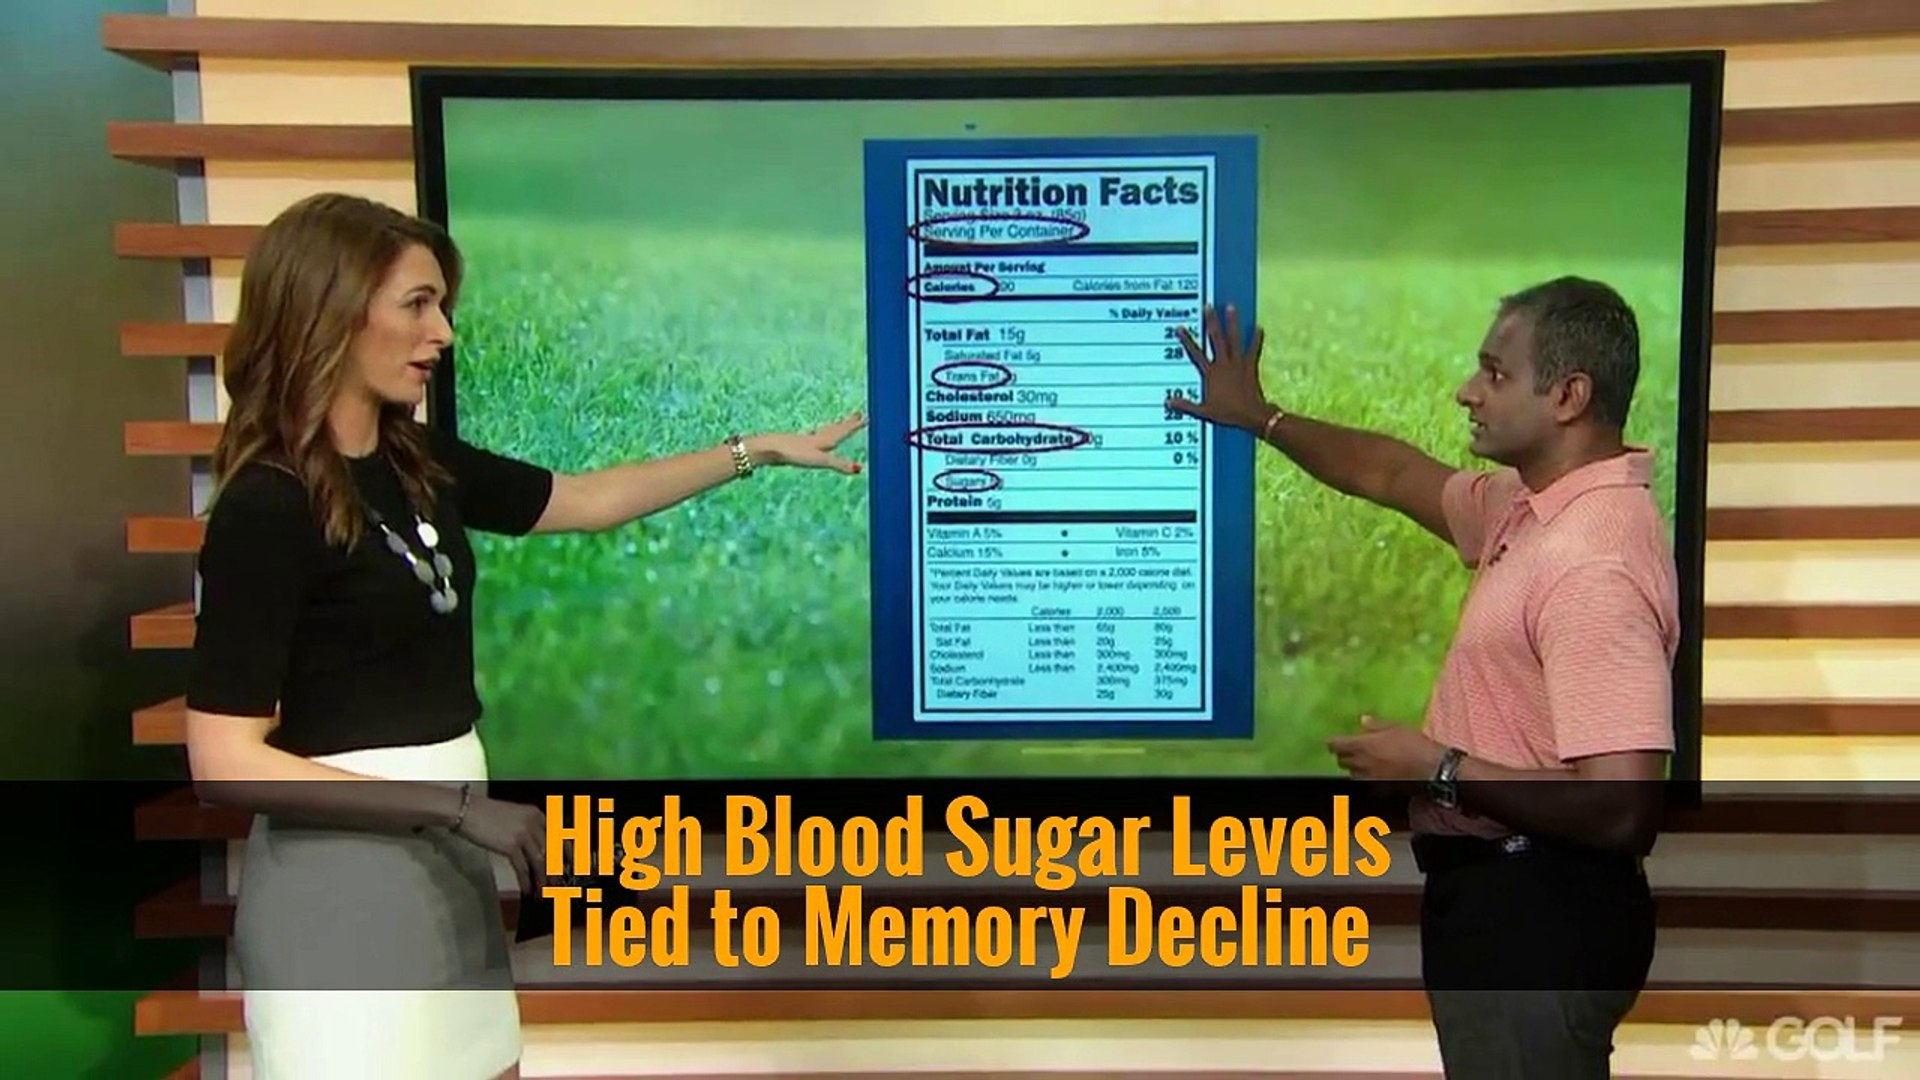 High Blood Sugar Levels Tied to Memory Decline